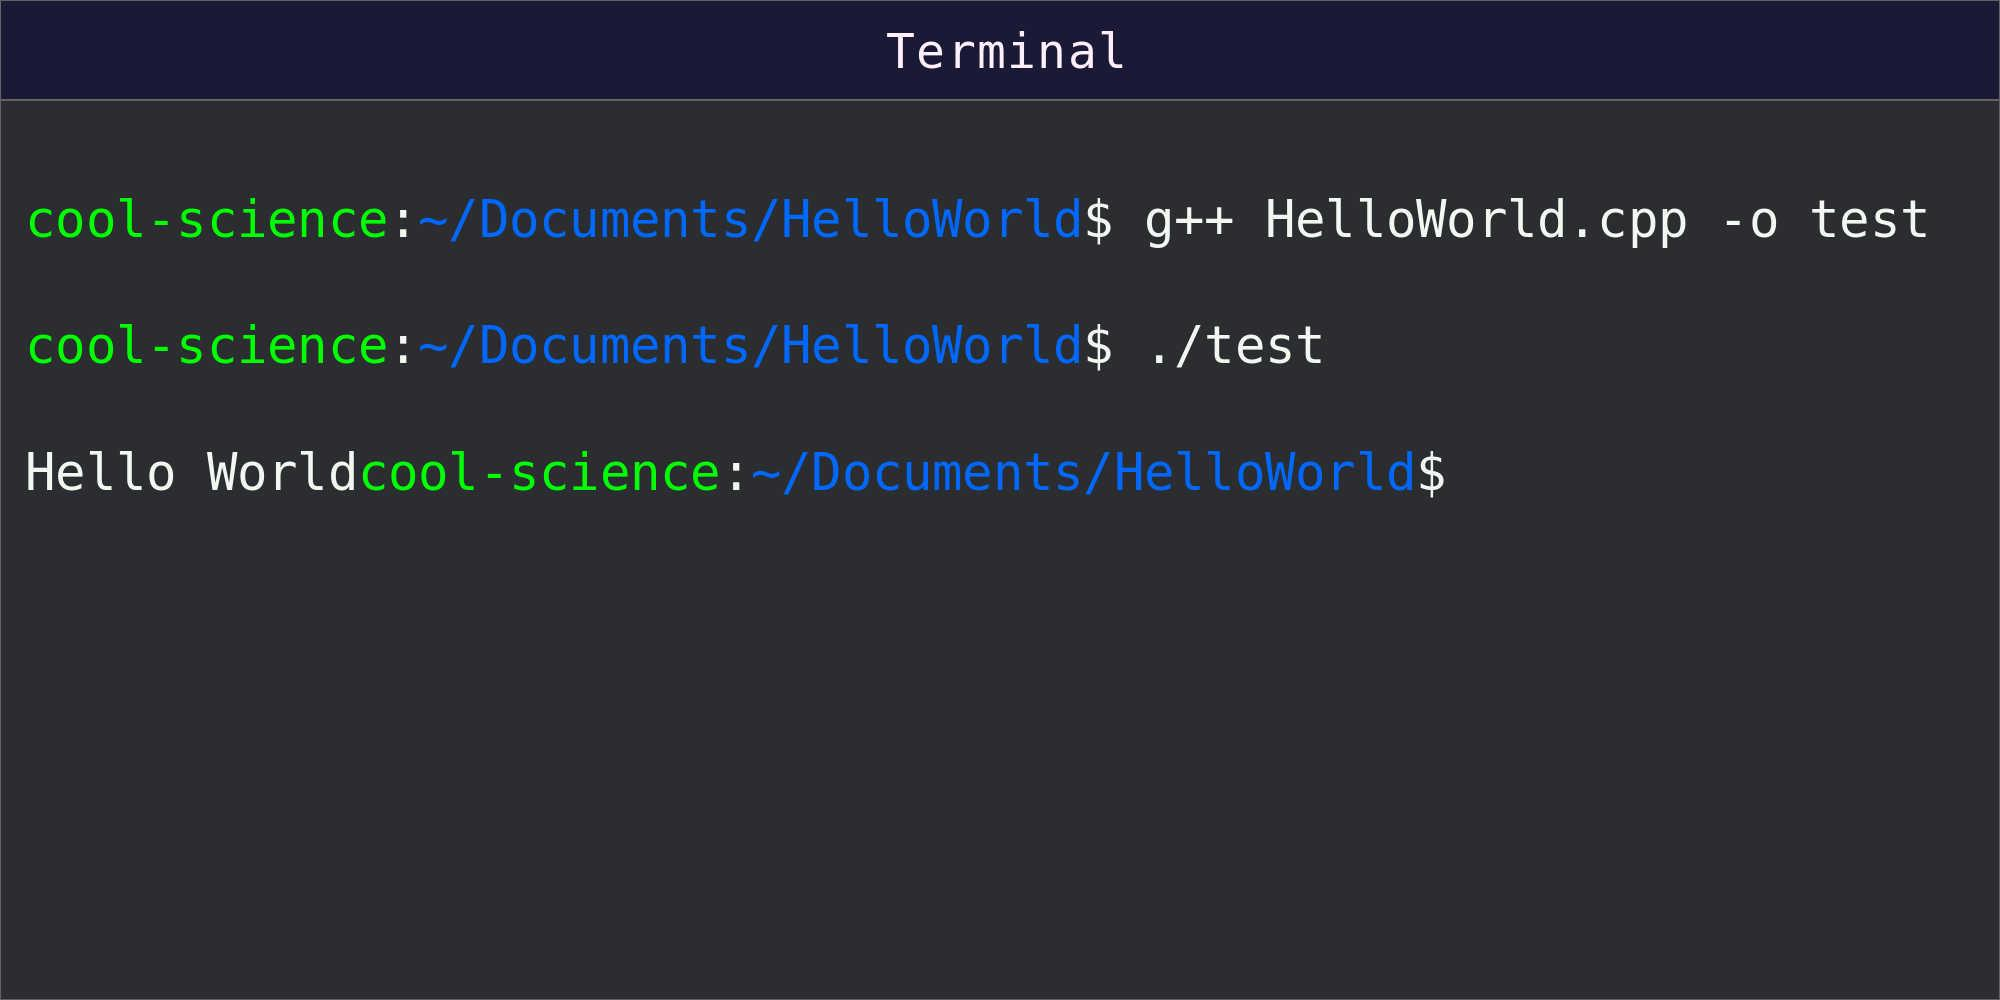 Commands and results shown in command line terminal